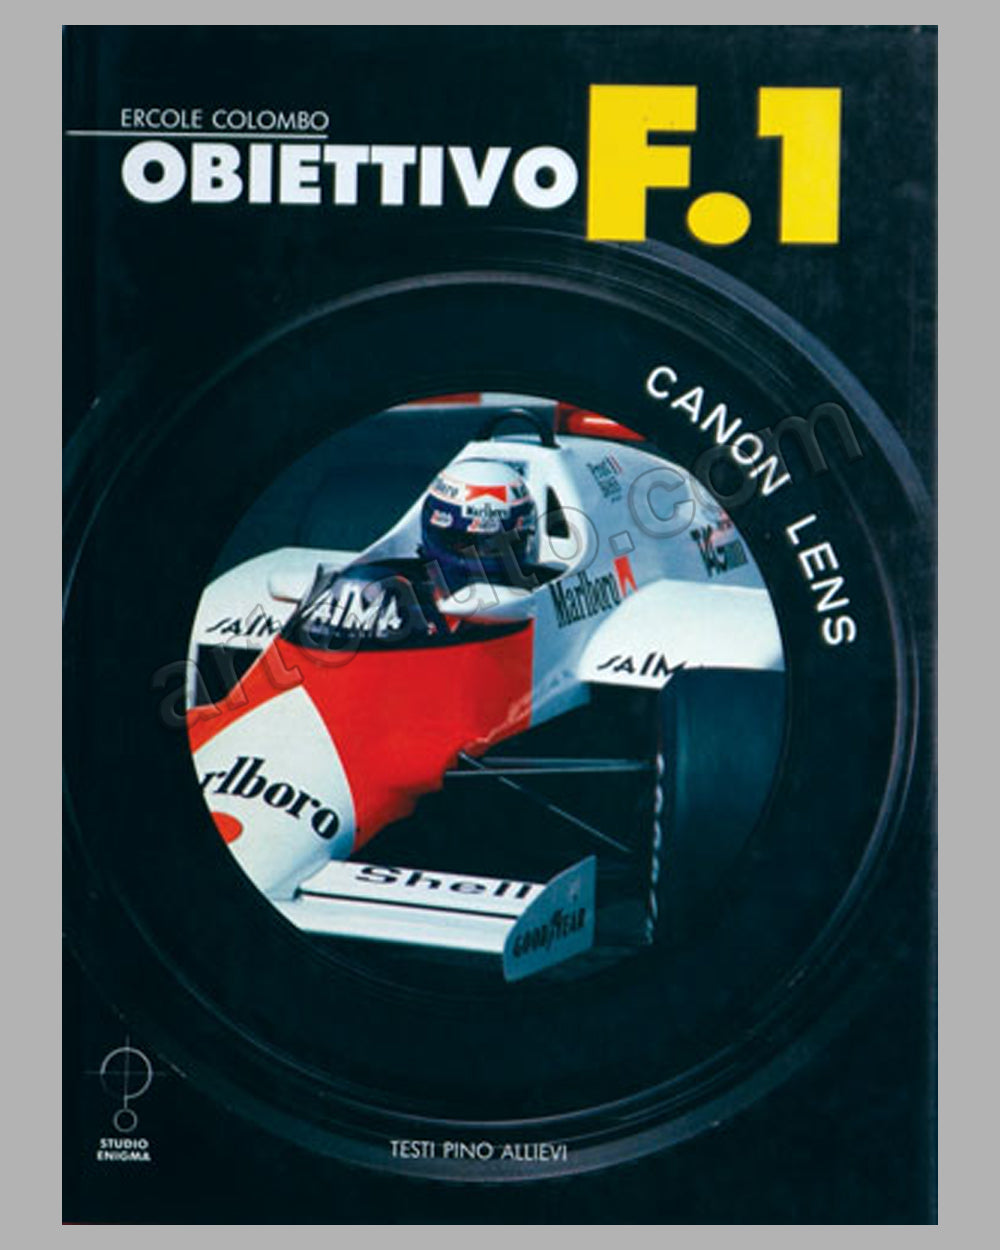 1985 - Obiettivo F1 book by E. Colombo